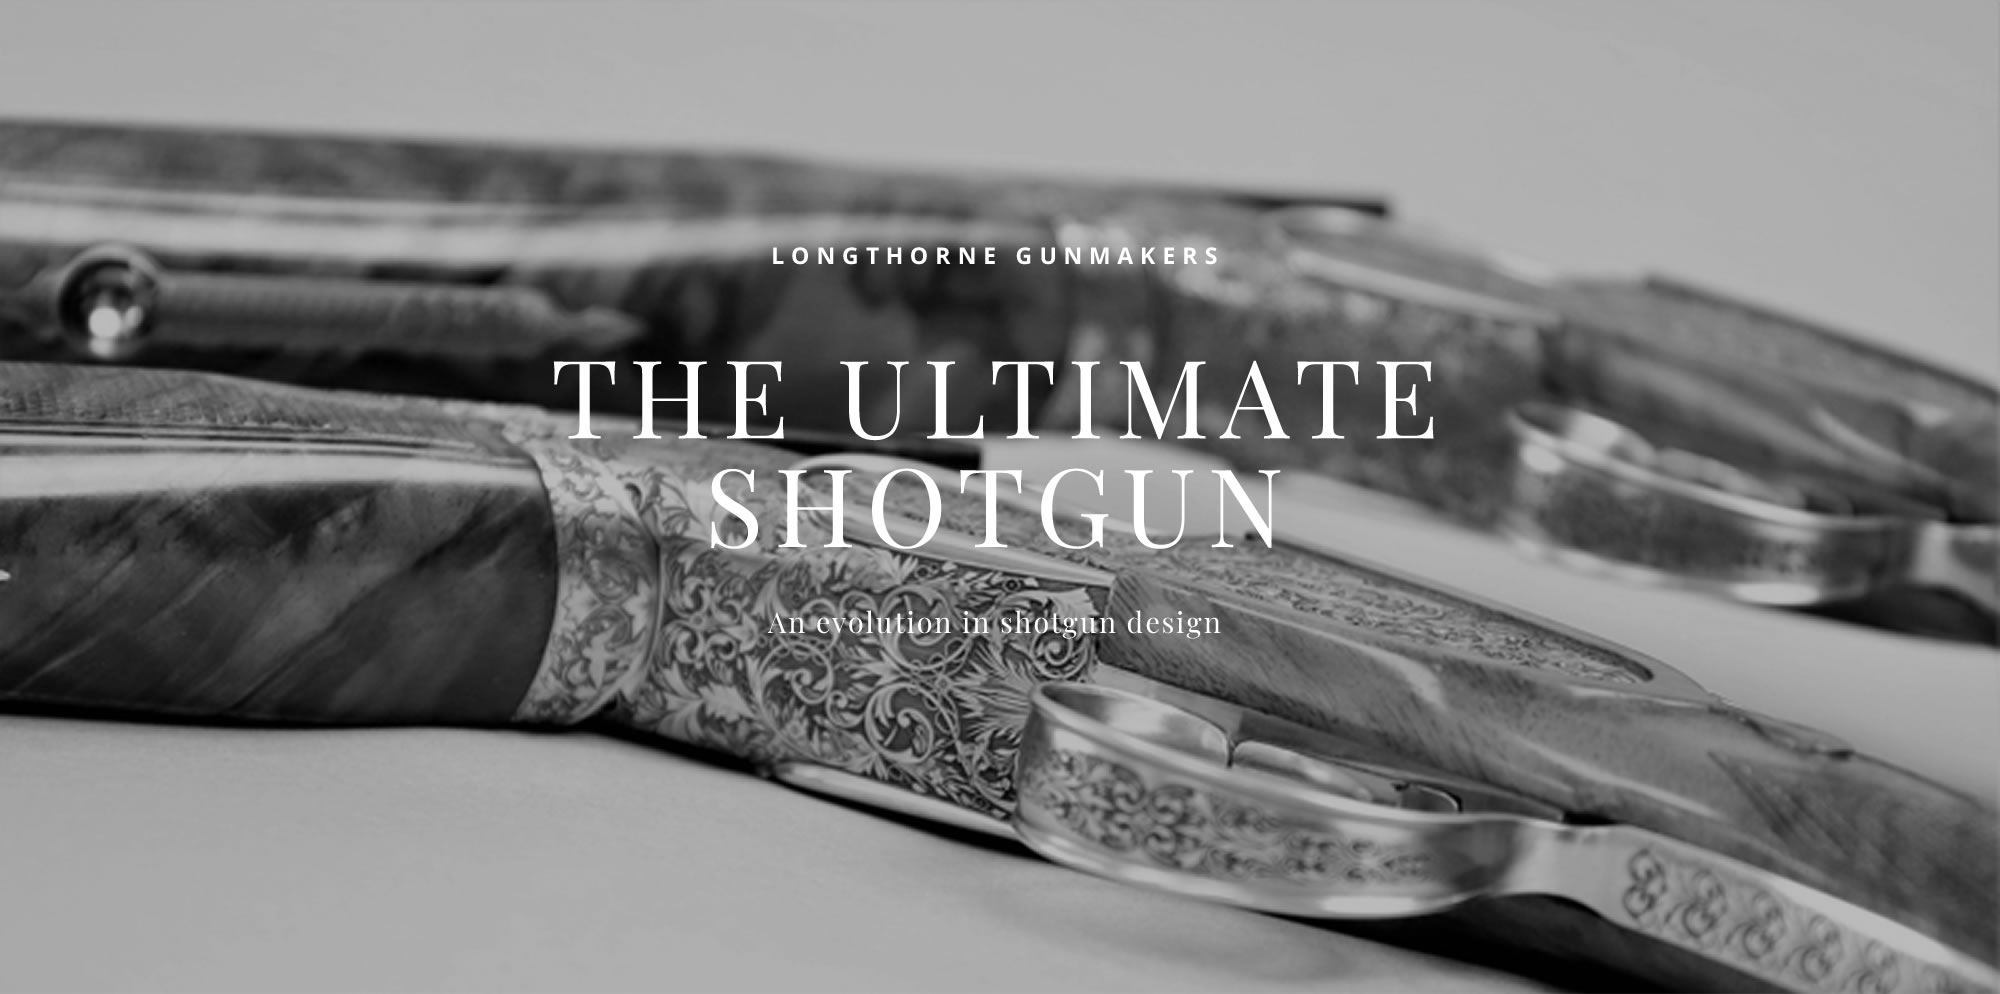 Longthorne Gunmakers - The Ultimate Shotgun. An evolution in shotgun design